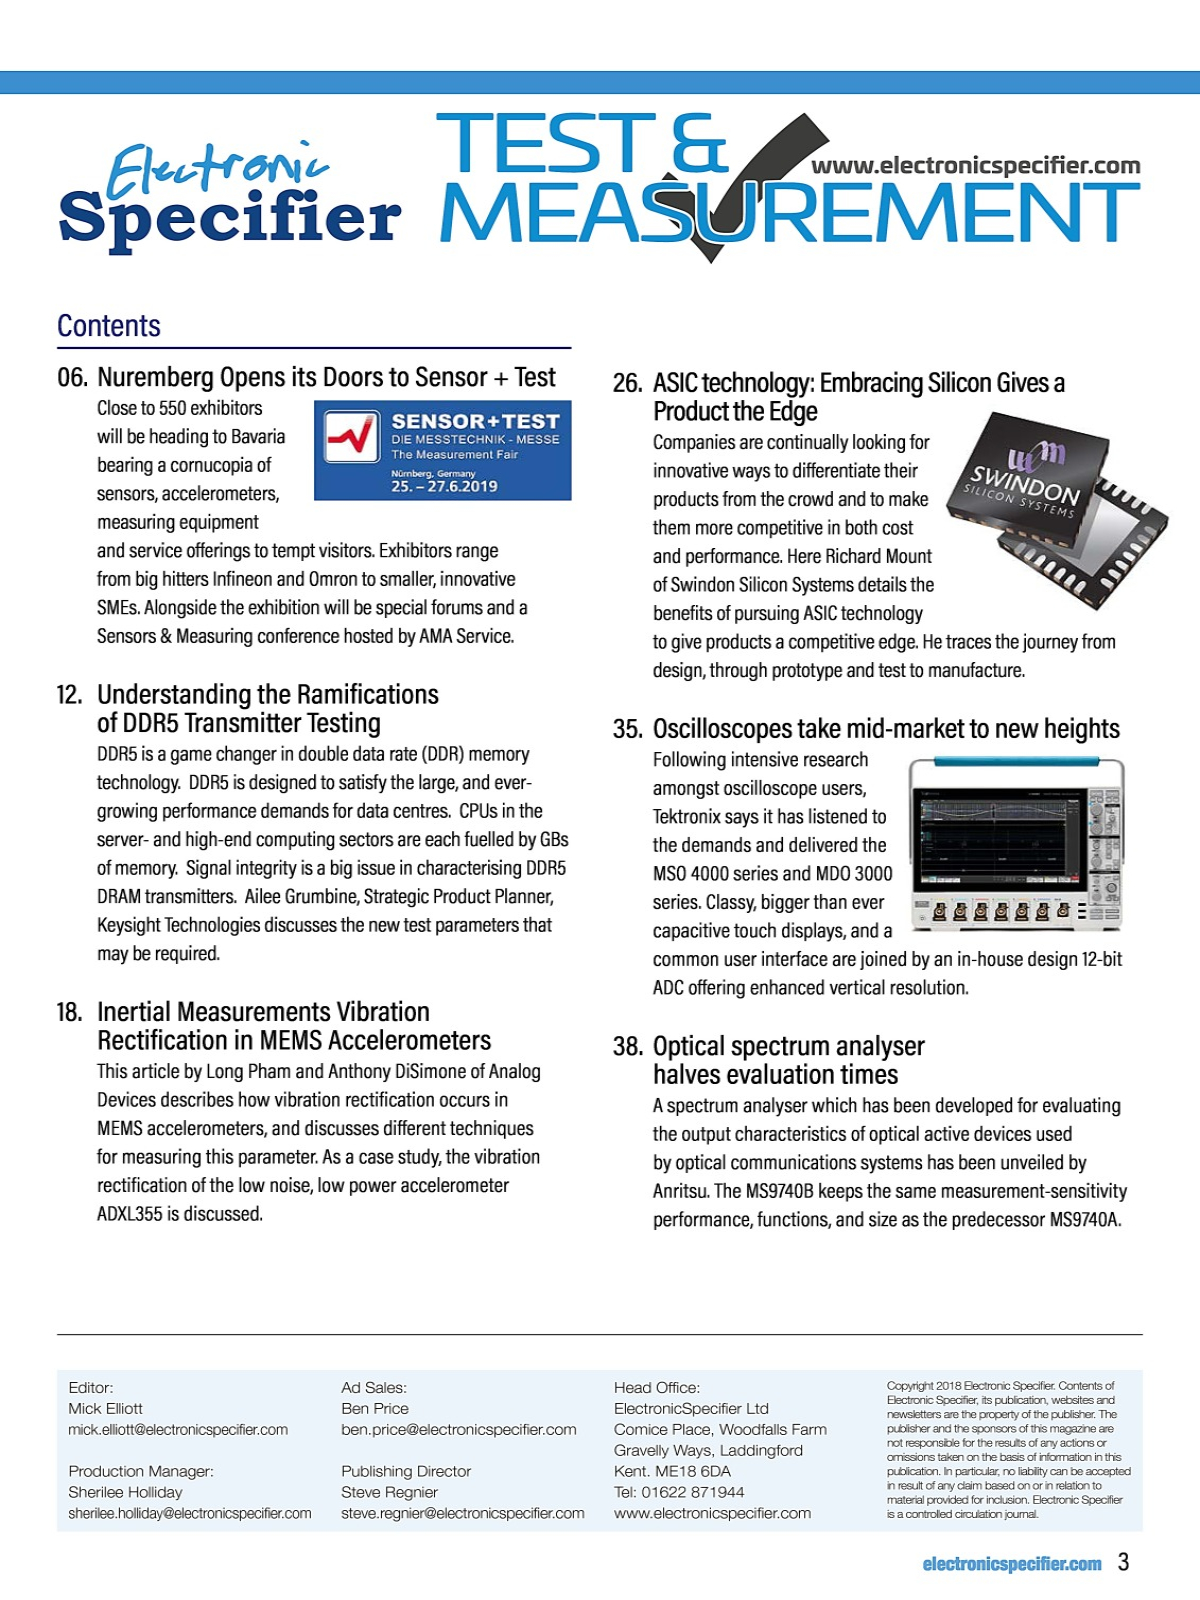 MYEBOOK - Test and measurement Issue 2 2019 Sensor+Test